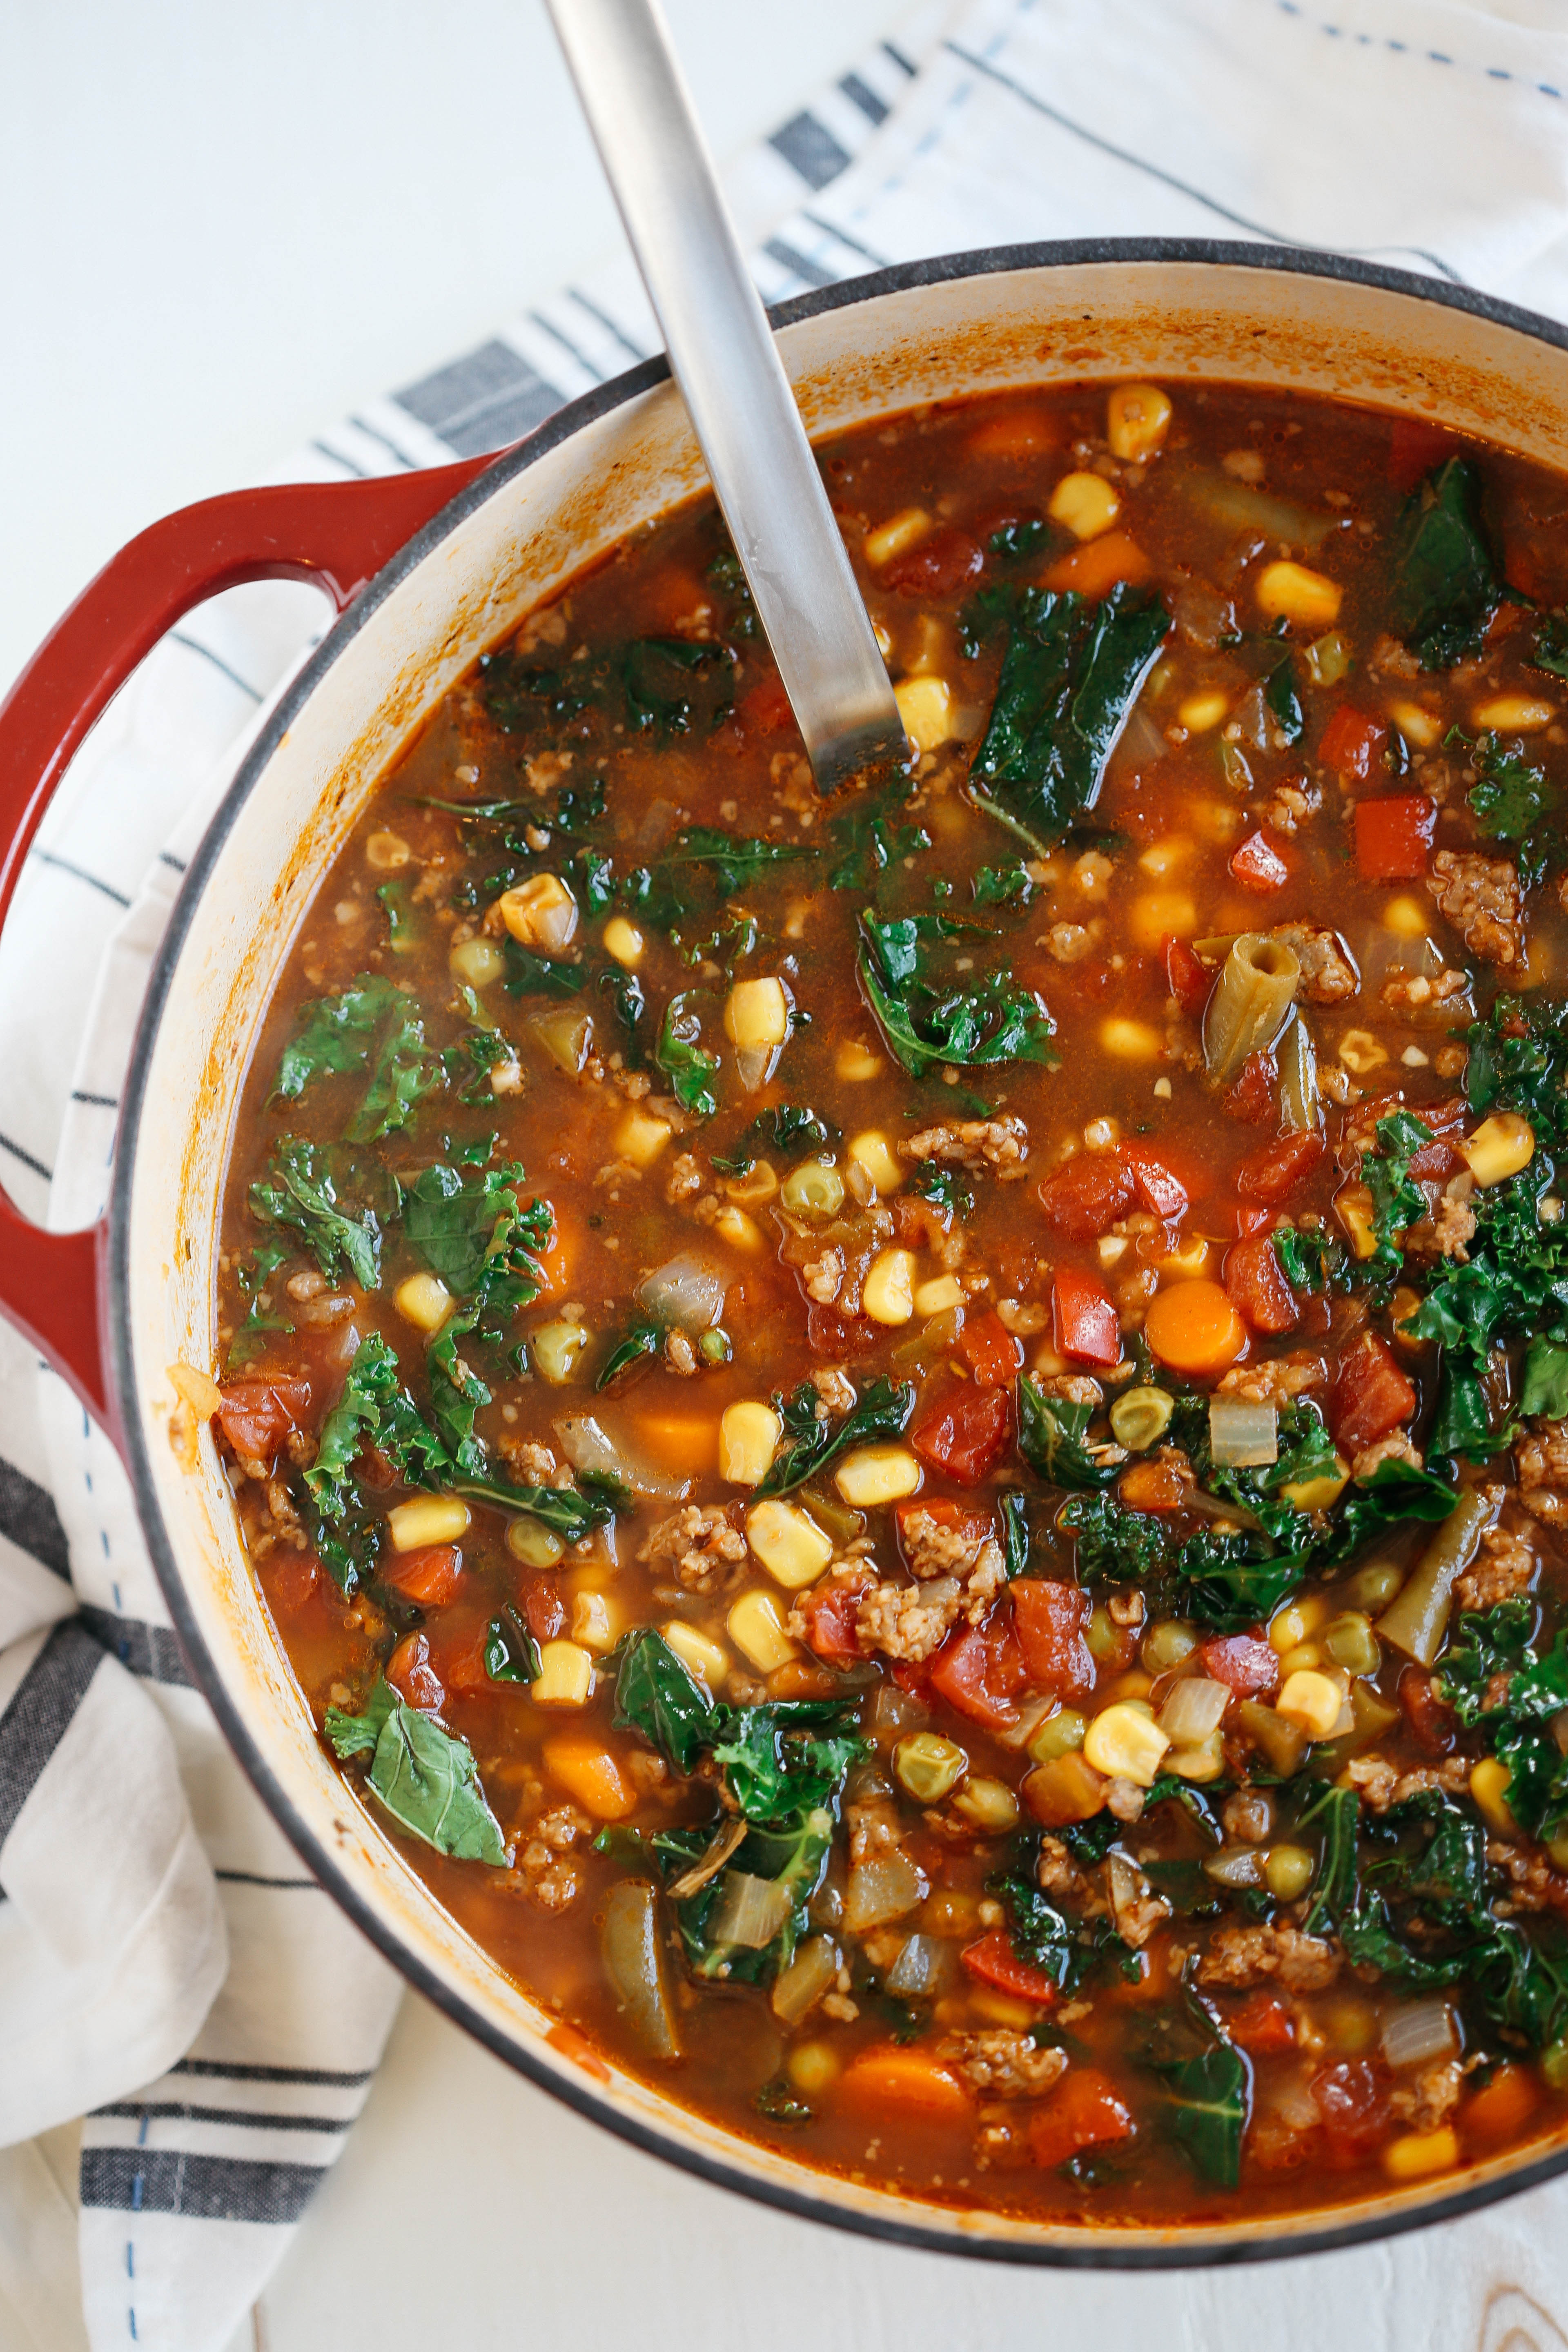 Kale Soup Recipes Healthy  e Pot Spicy Sausage and Kale Soup Eat Yourself Skinny